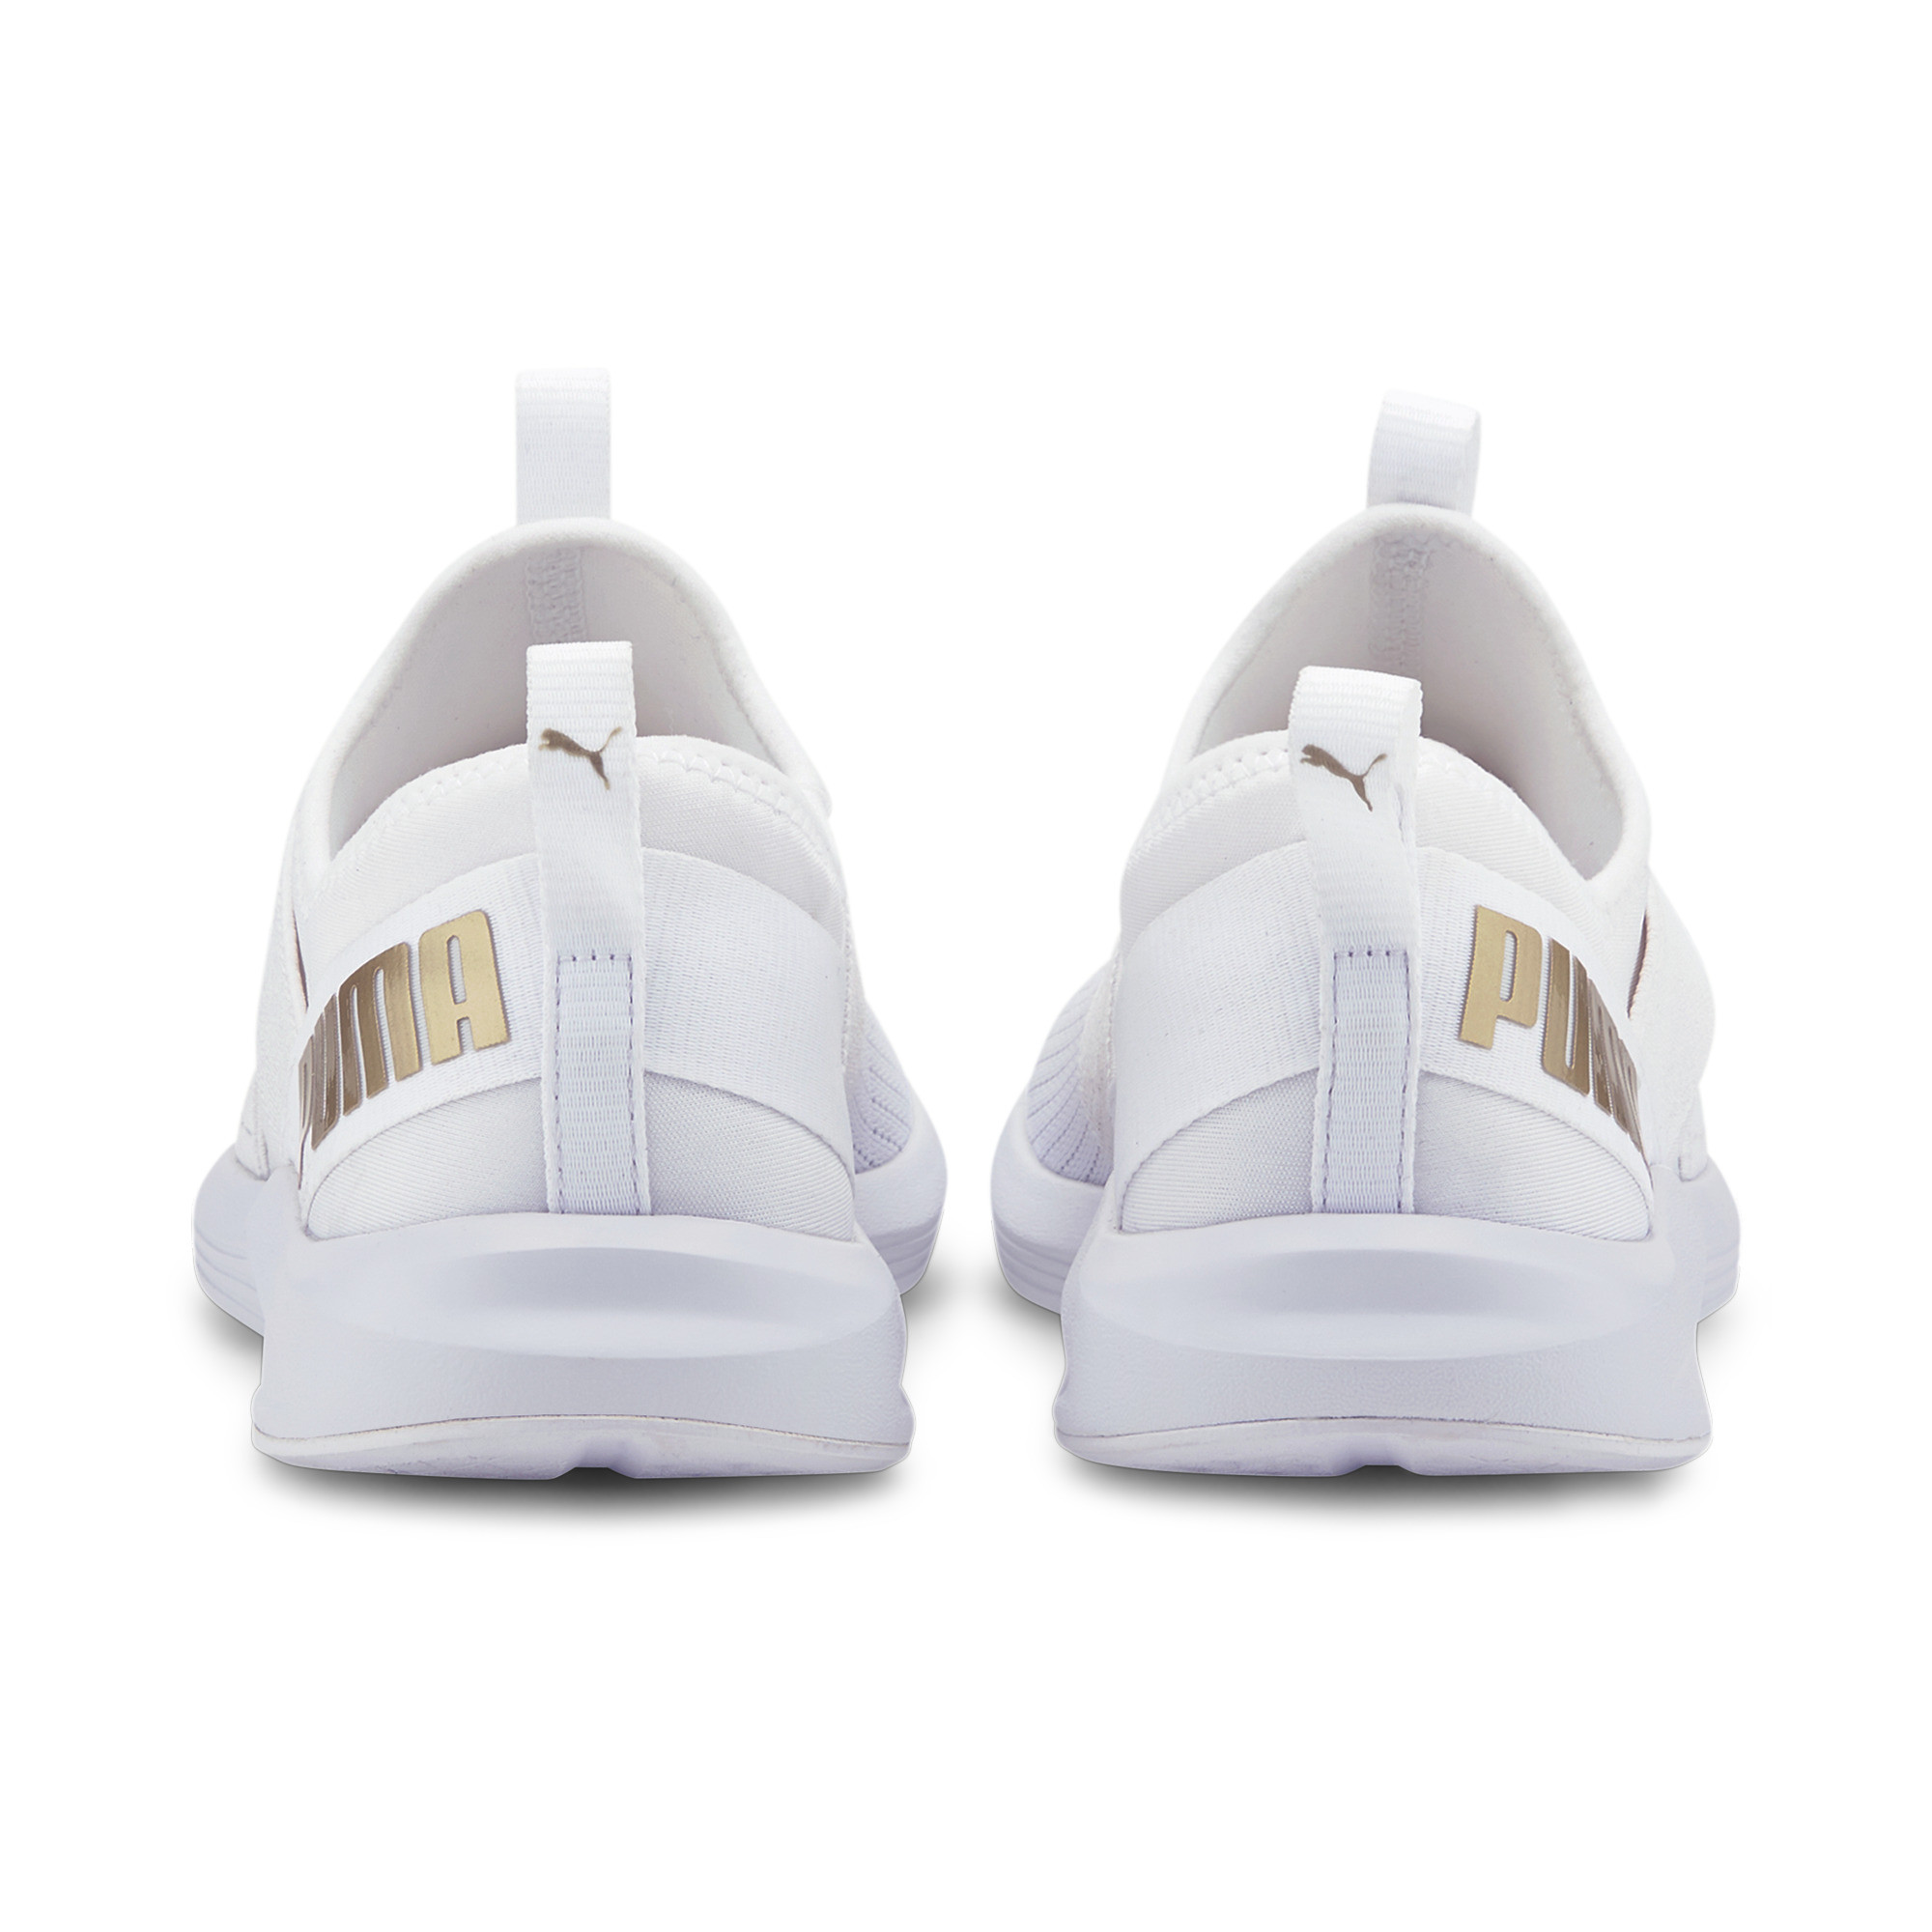 PUMA-Women-039-s-Prowl-Slip-On-Training-Shoes thumbnail 10